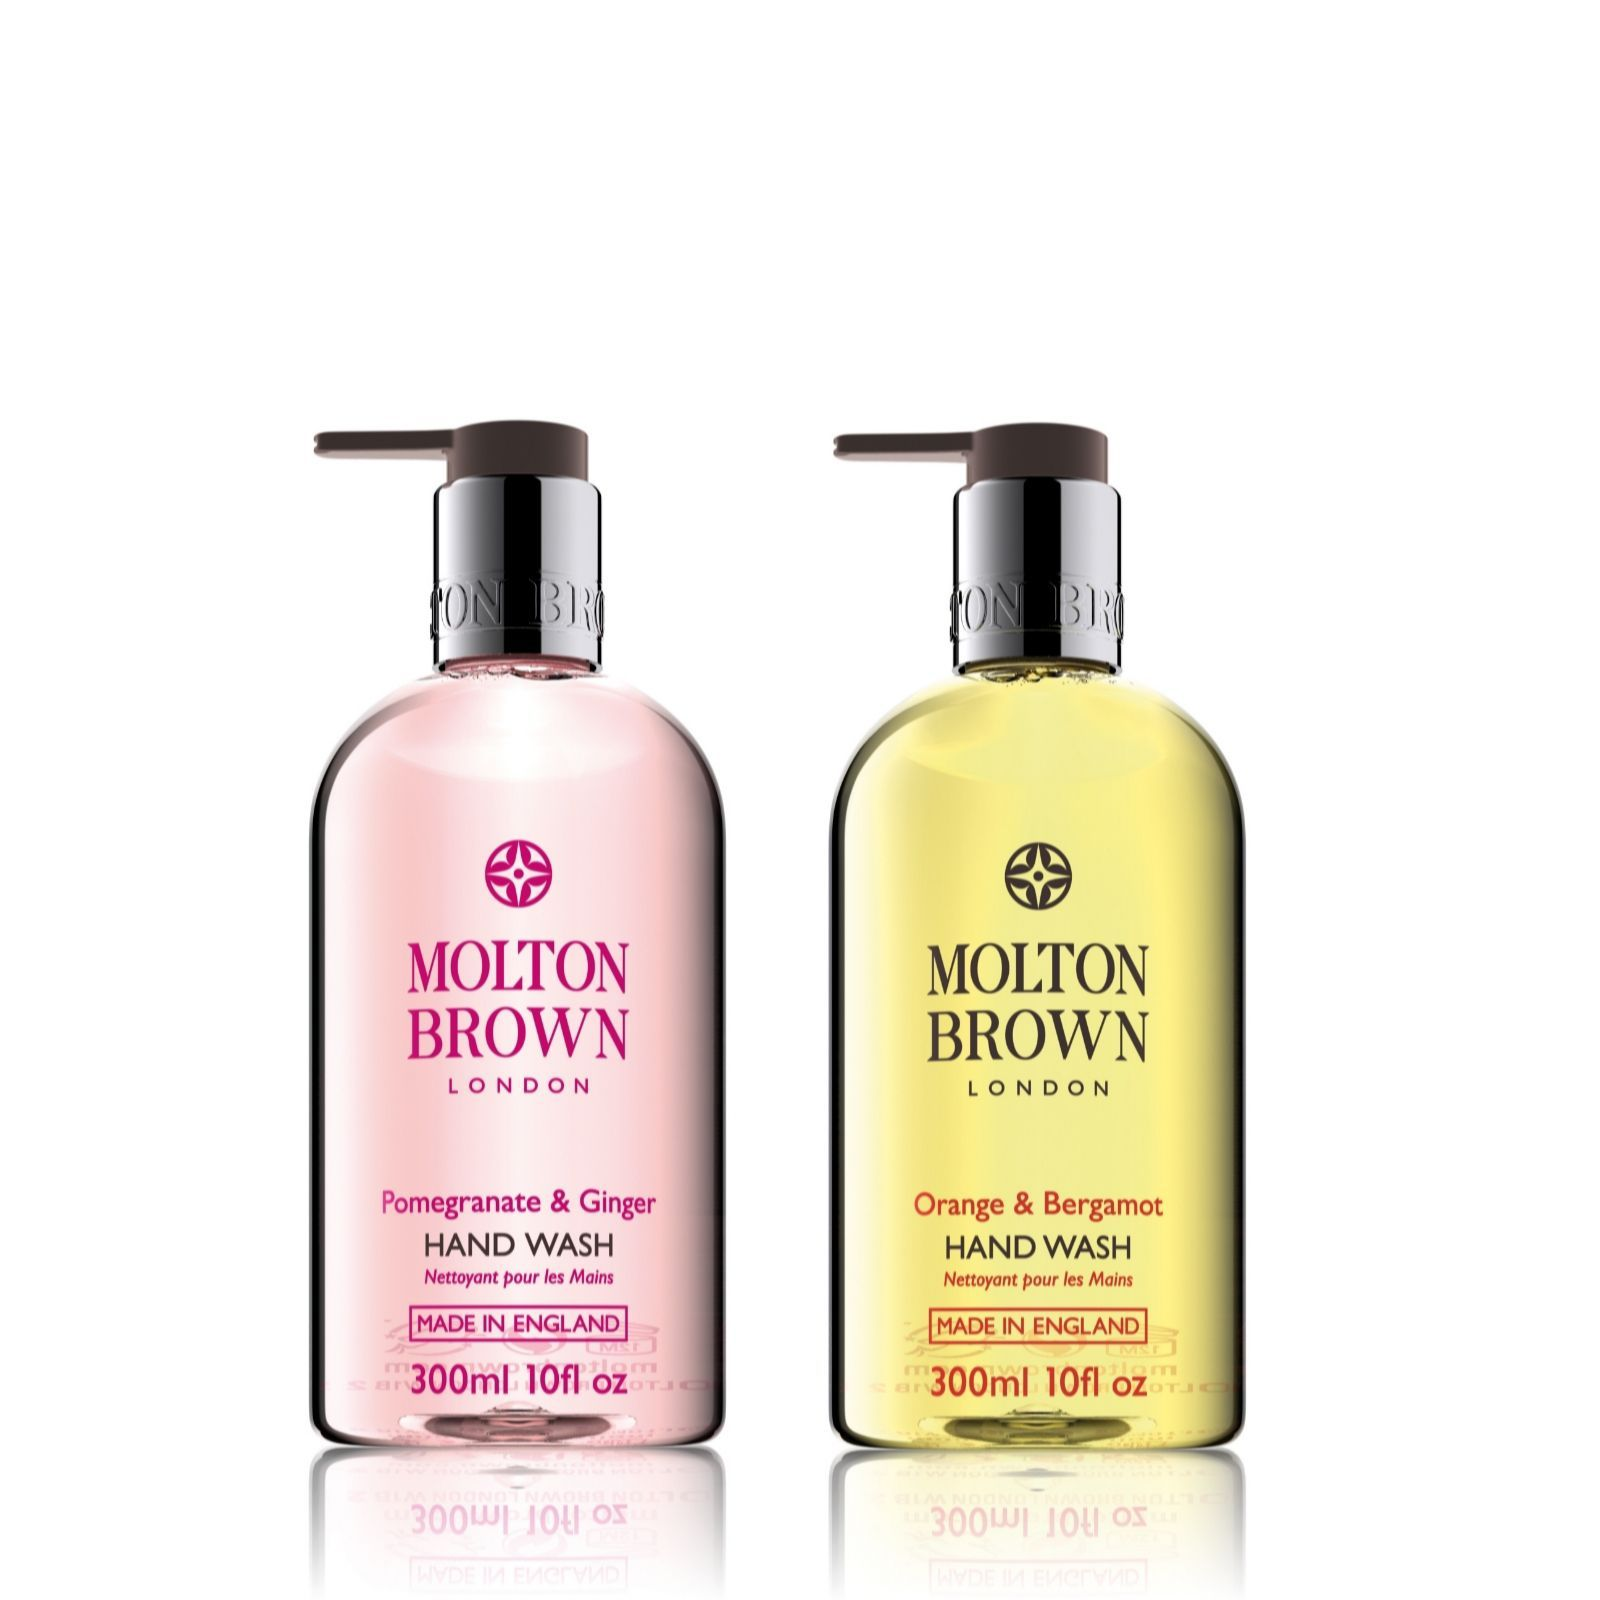 Molton brown pris